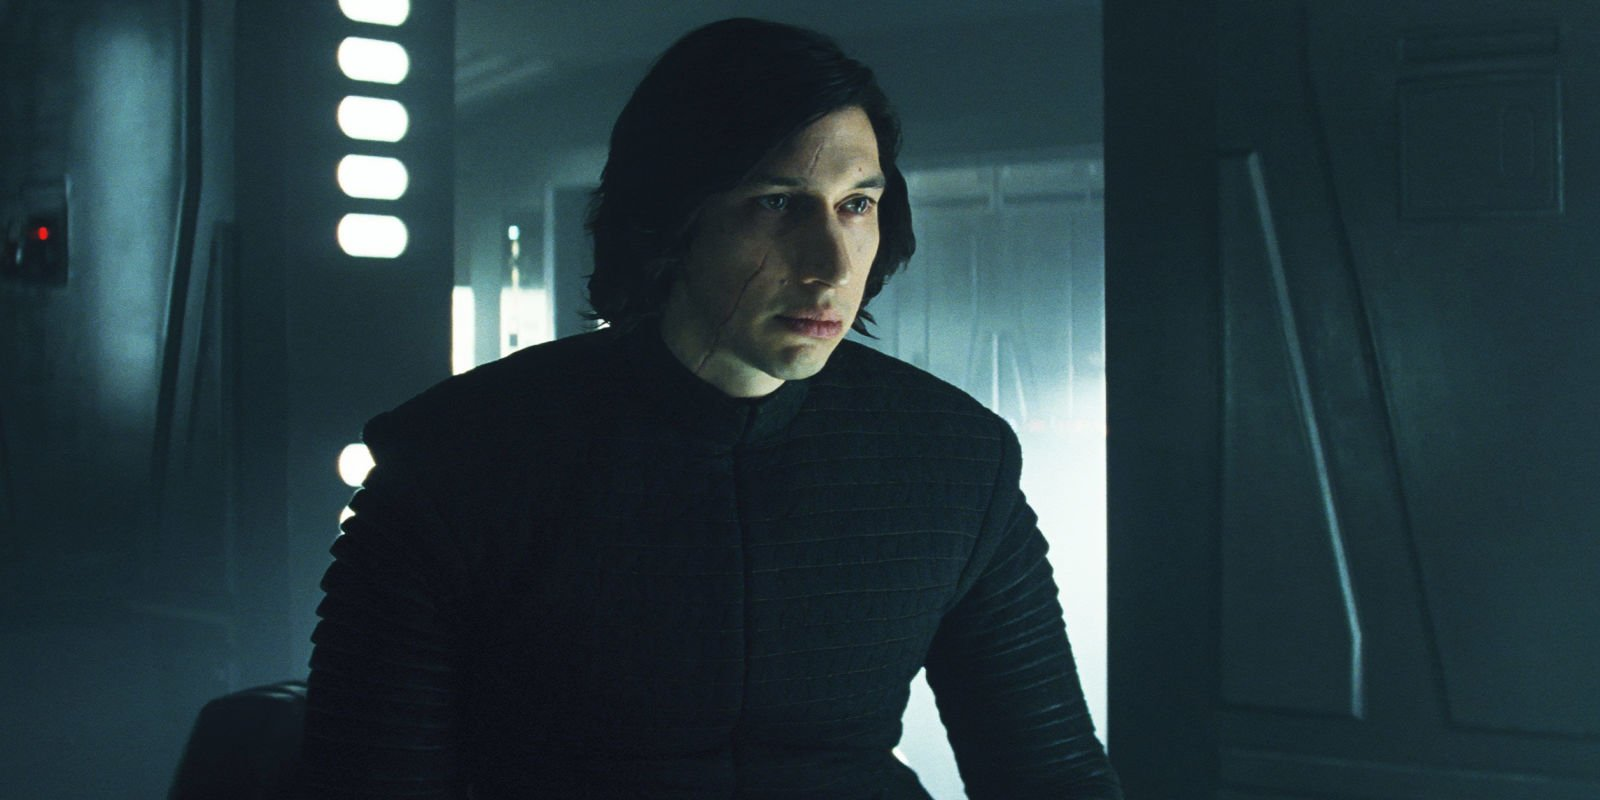 The Last Jedi director says Rey and Kylo's hand-touching is 'closest thing to a sex scene in a Star Wars movie'